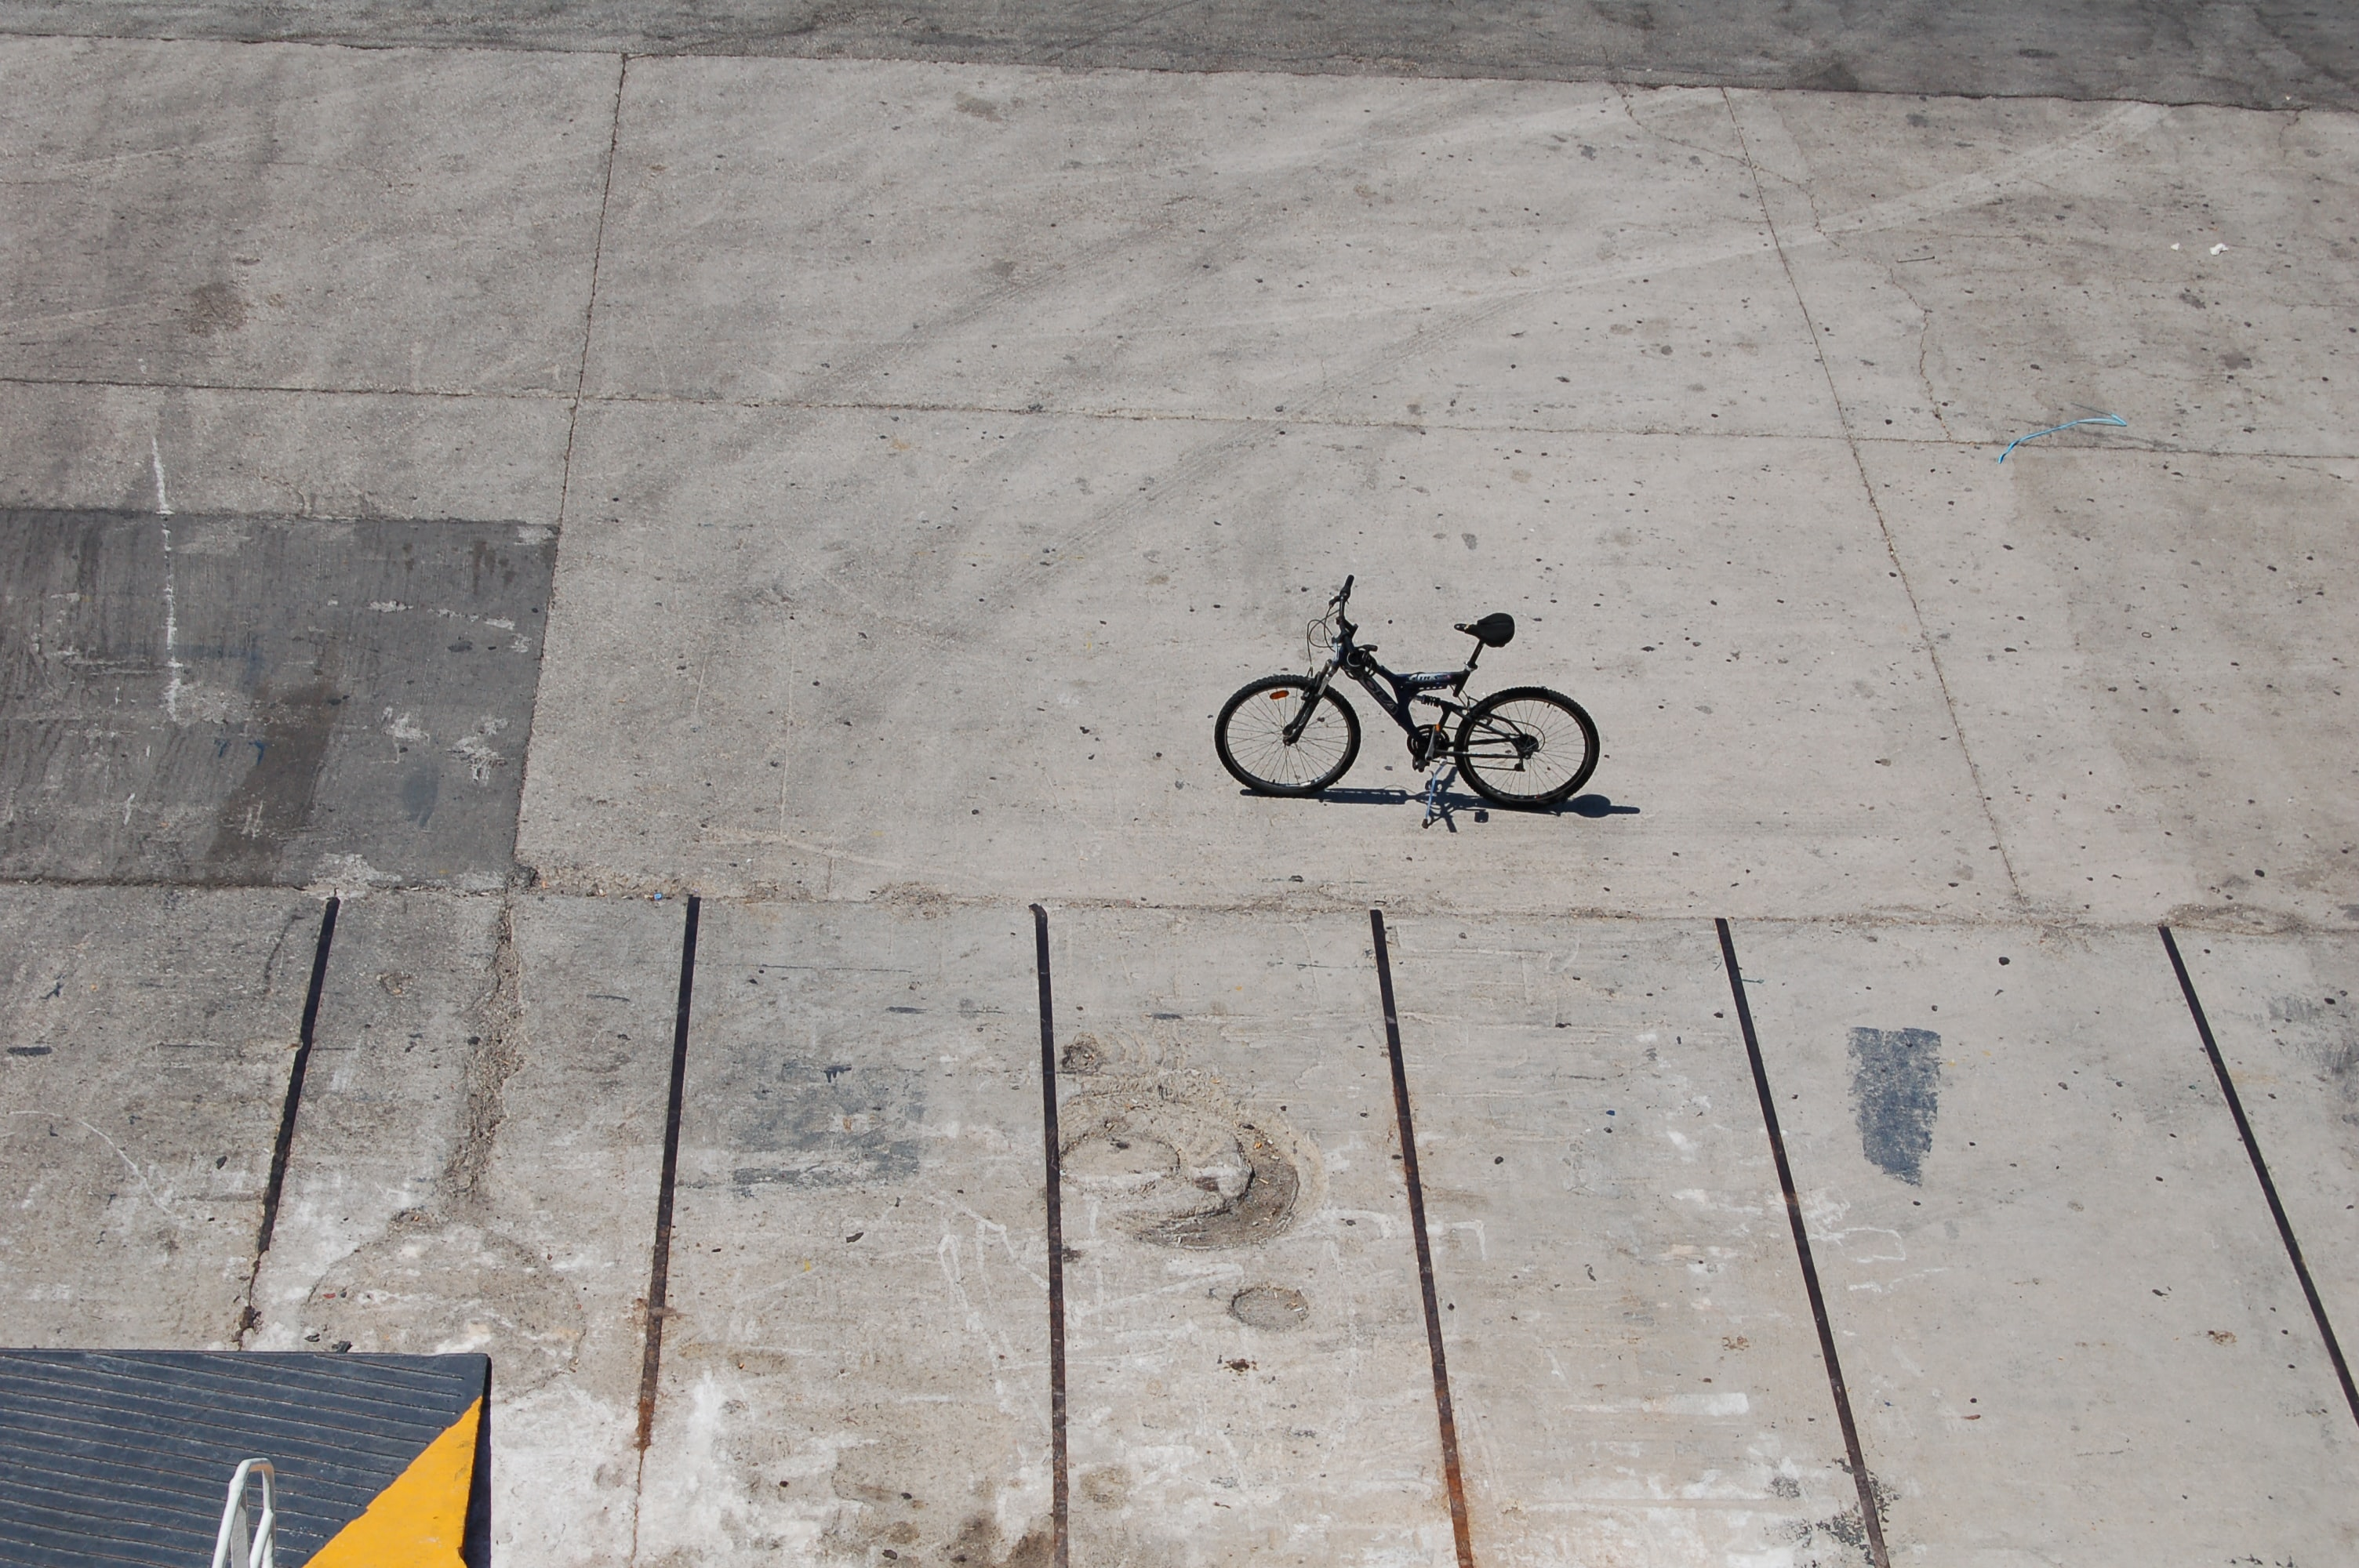 Bicycle with black frame on a textured, concrete sidewalk in Piraeus